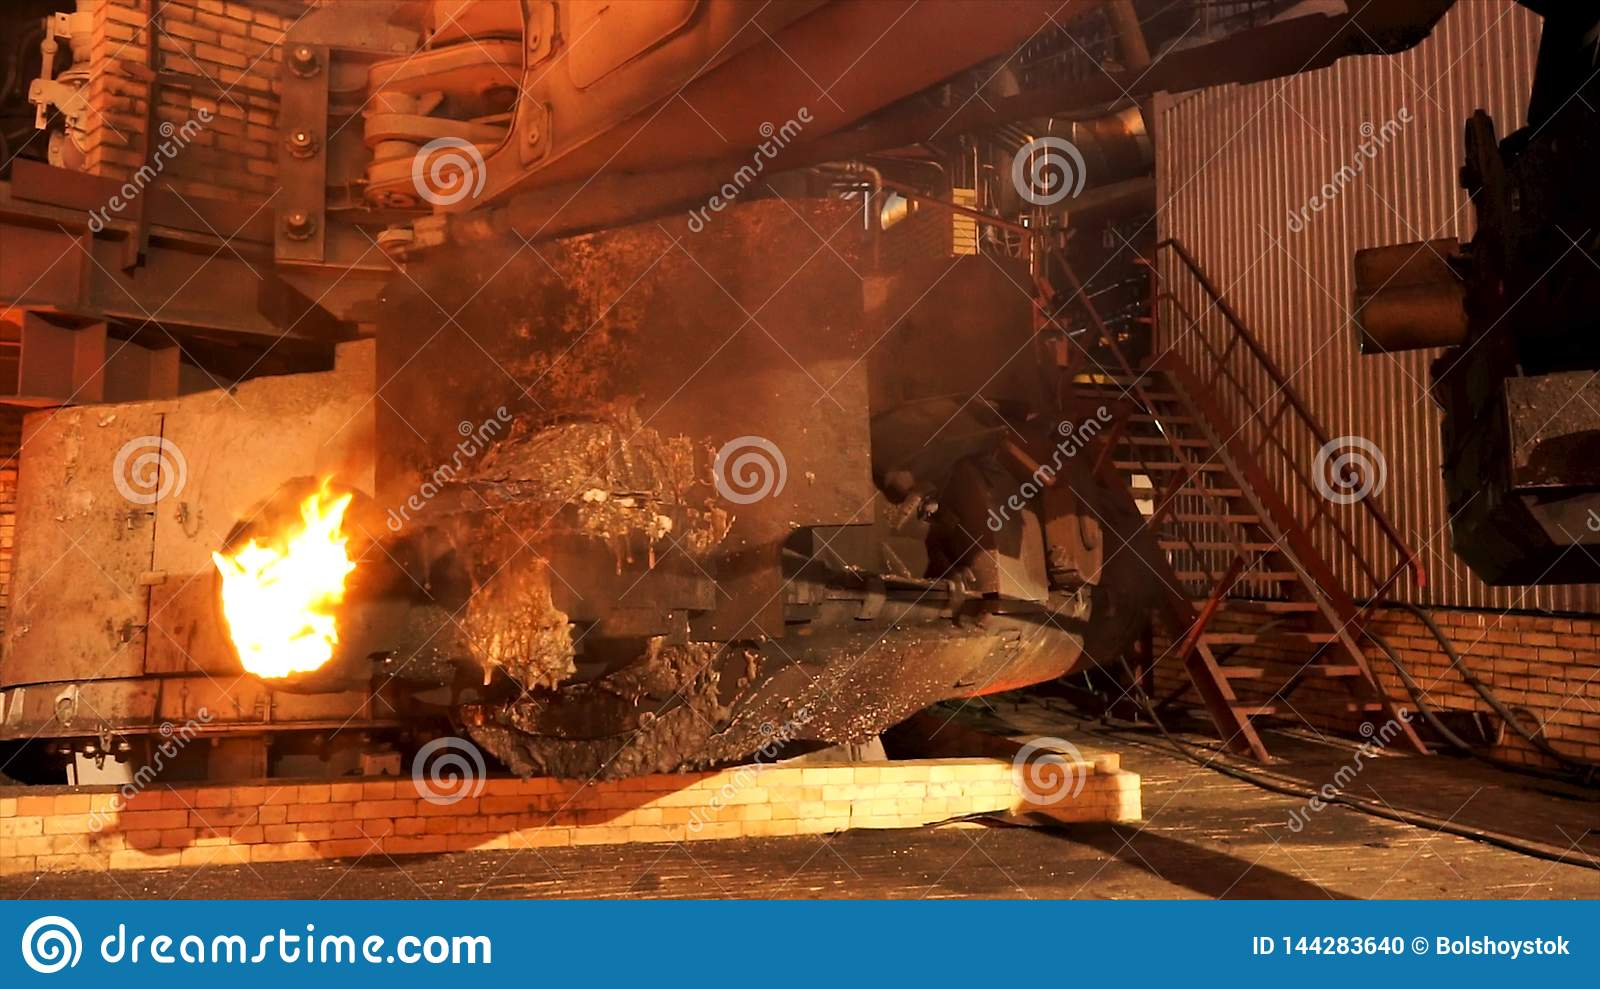 Close up for the equipment at the metallurgical plant with burning furnace melting steel. Stock footage. Shop at the